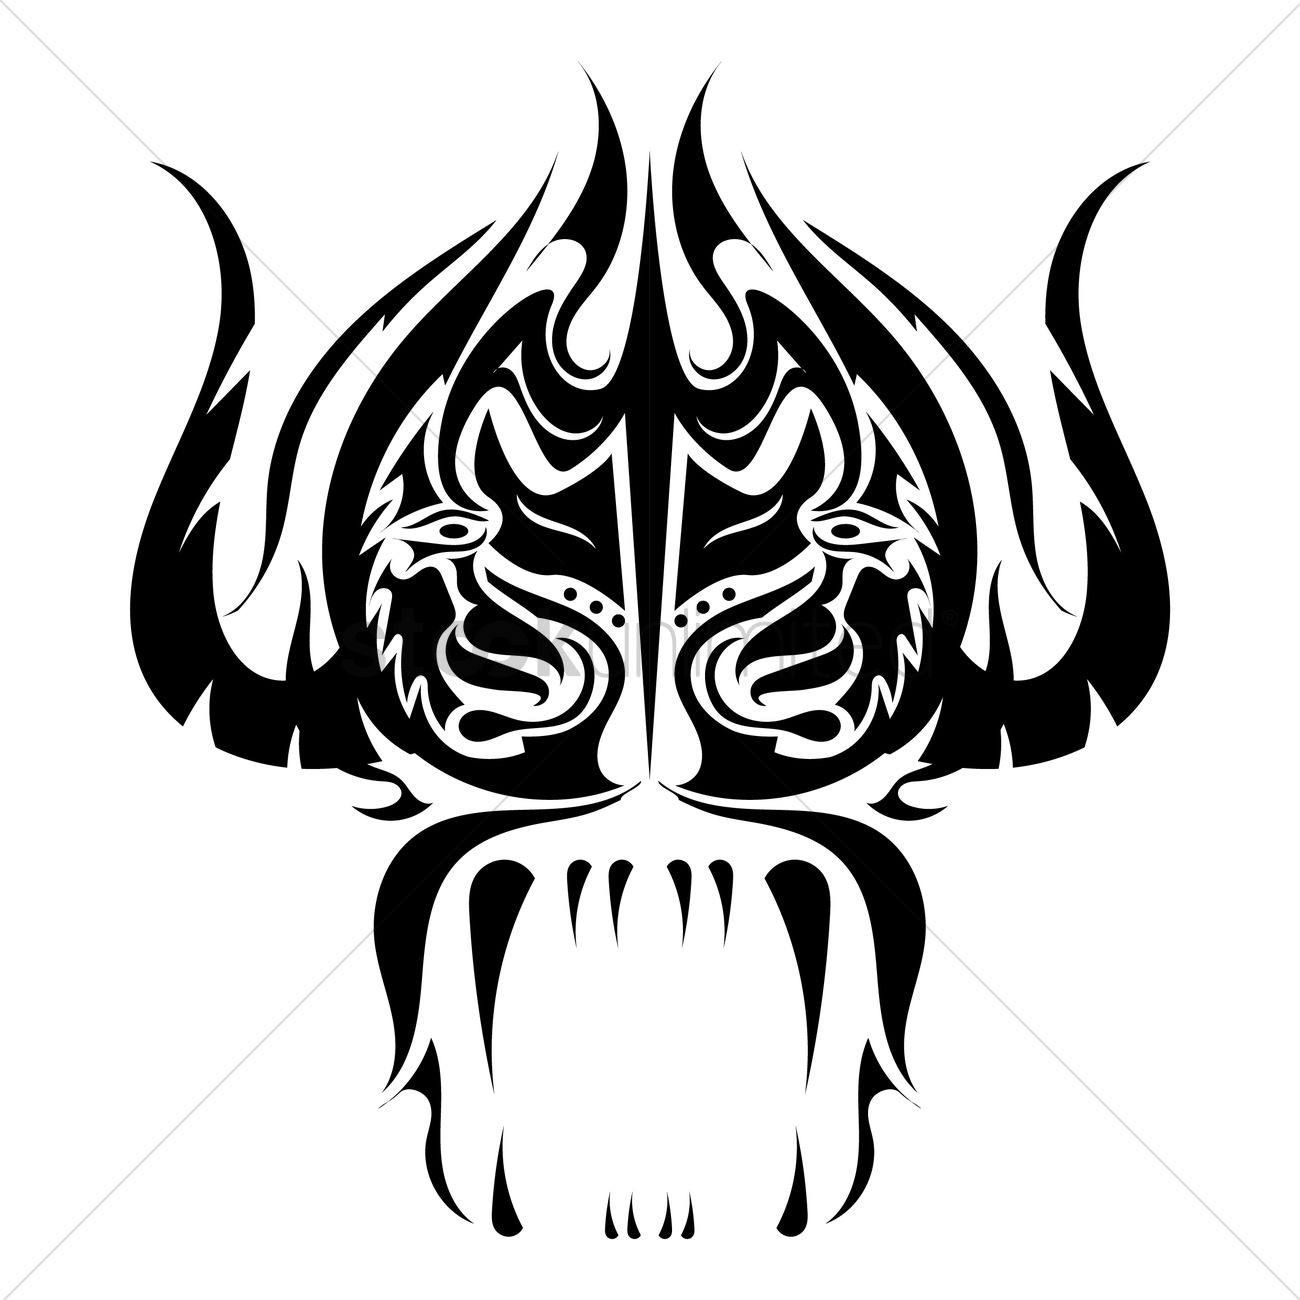 Ox tattoo design vector image 1433374 stockunlimited ox tattoo design vector graphic buycottarizona